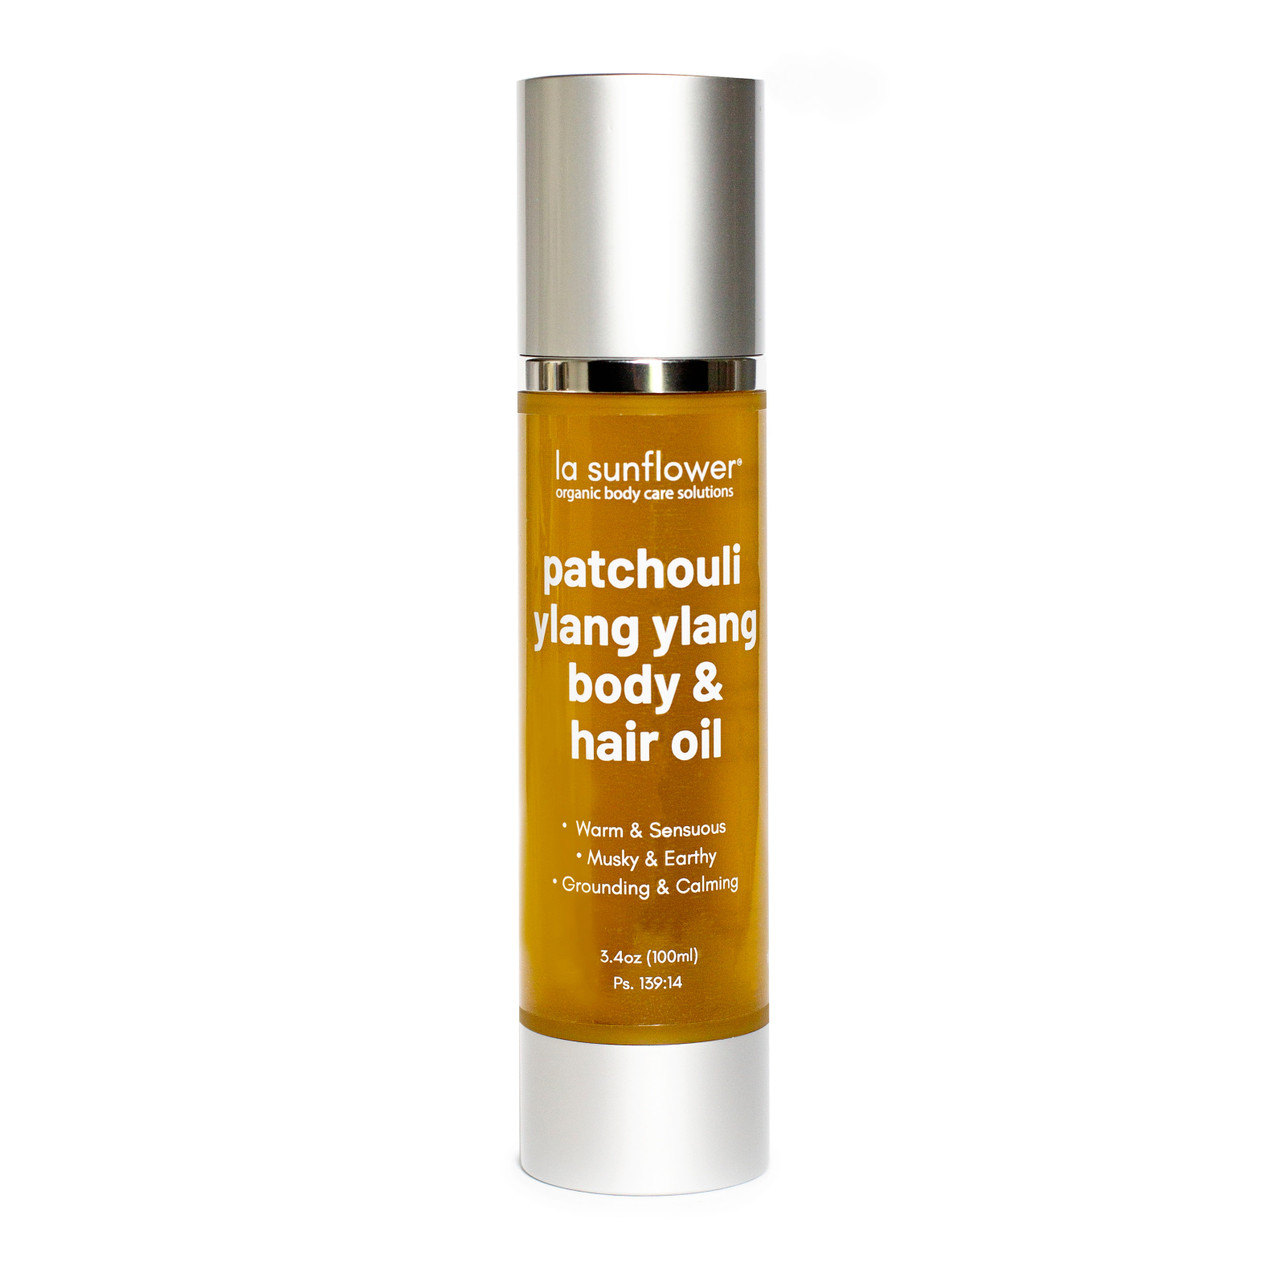 Patchouli Ylang Ylang Body & Hair Oil: Silky Hydration